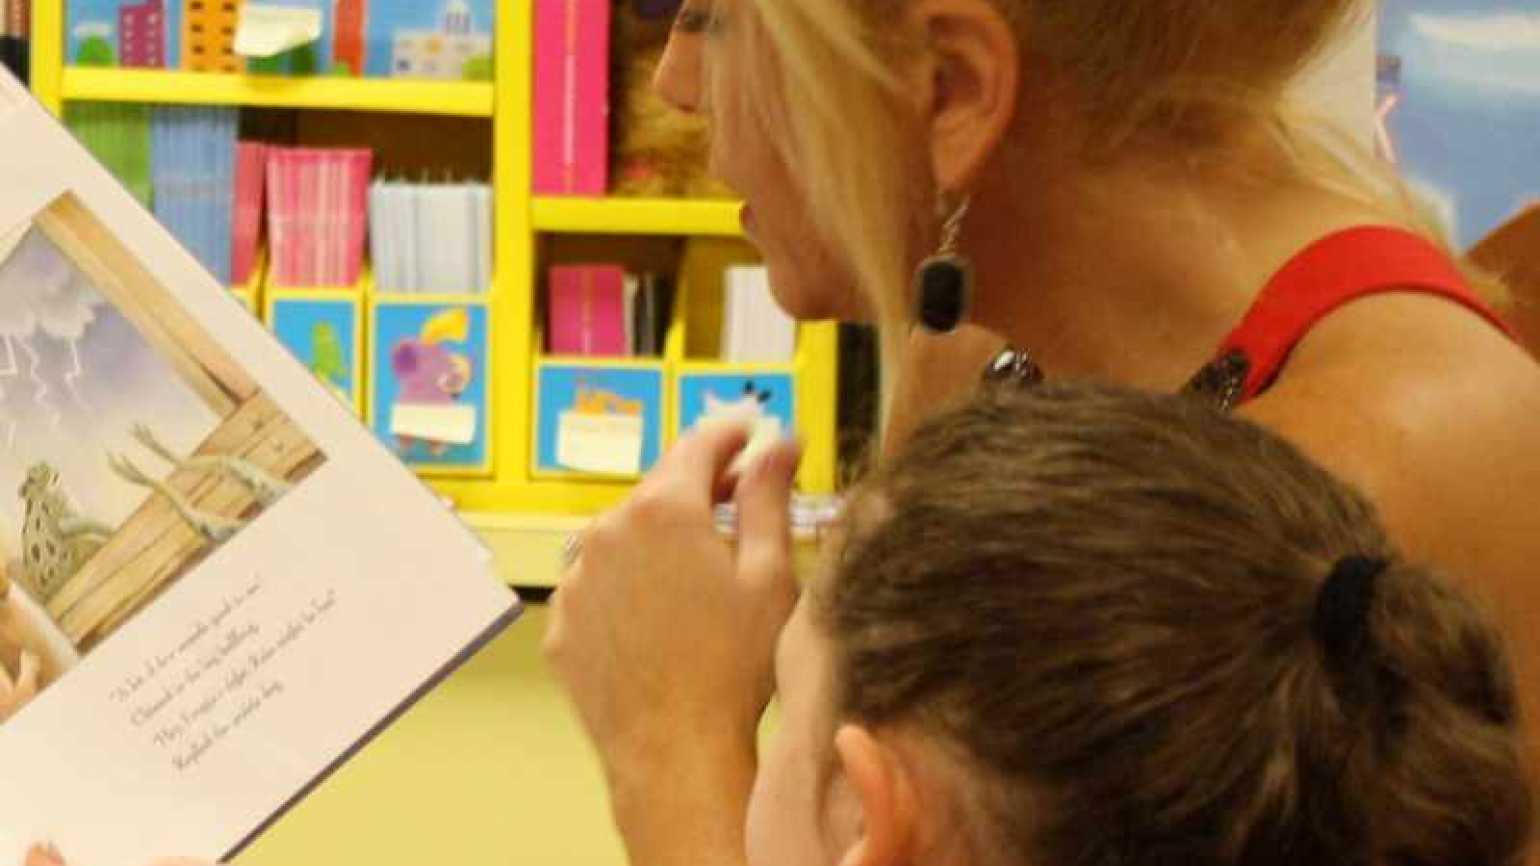 Inspirational Stories blogger Michelle Medlock Adams reading to a child